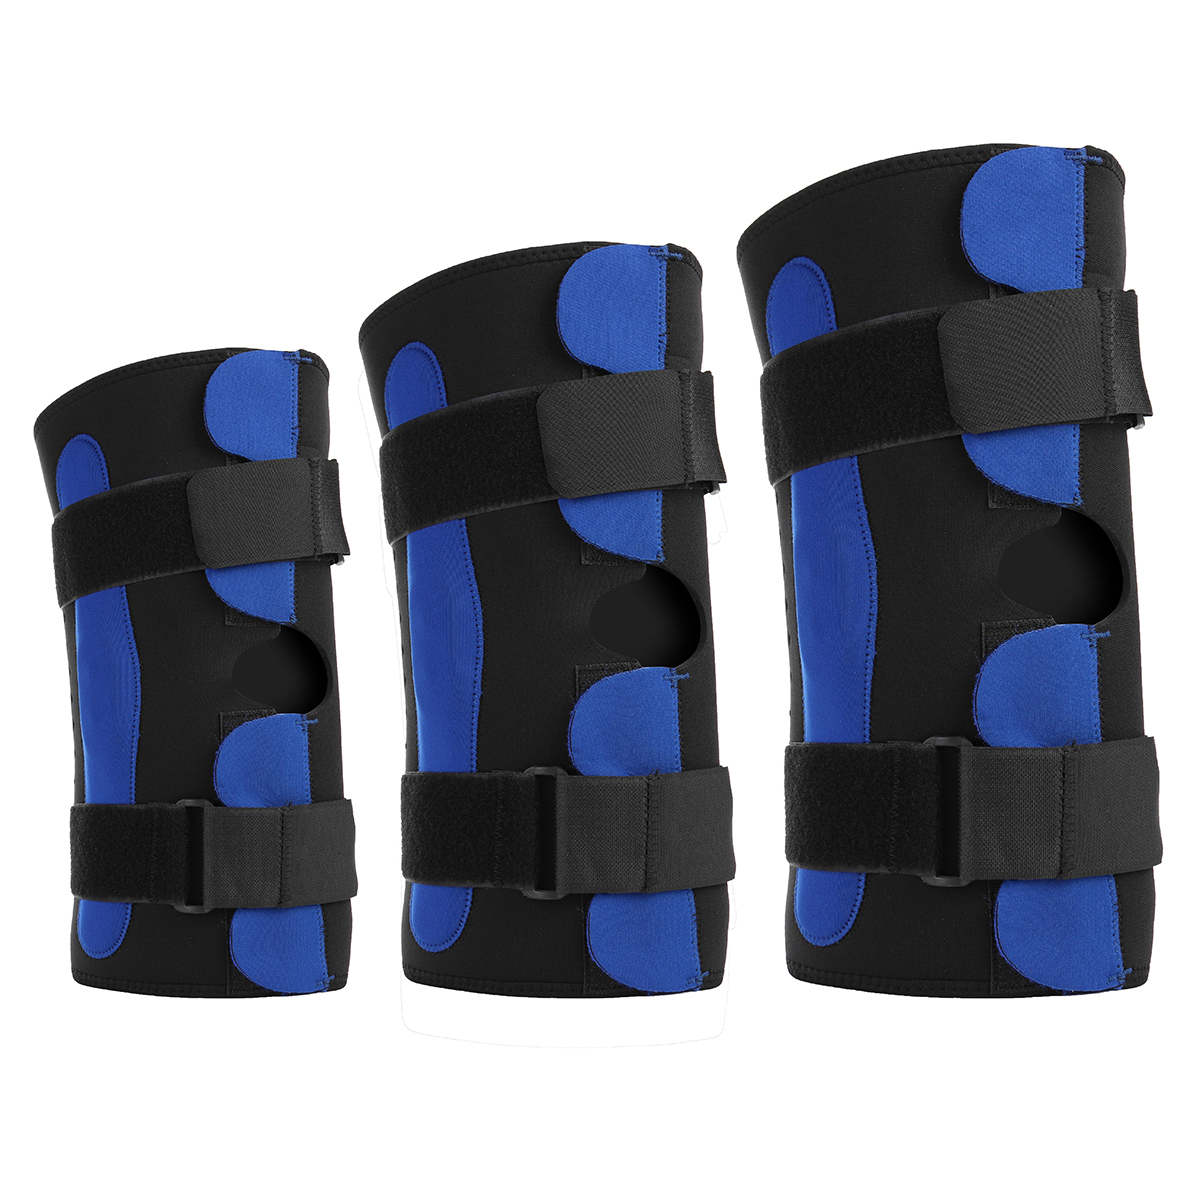 Adjustable Knee Pad Patella Support Brace Sleeve Wrap Cap Stabilizer Portable Sports Knee Protectors